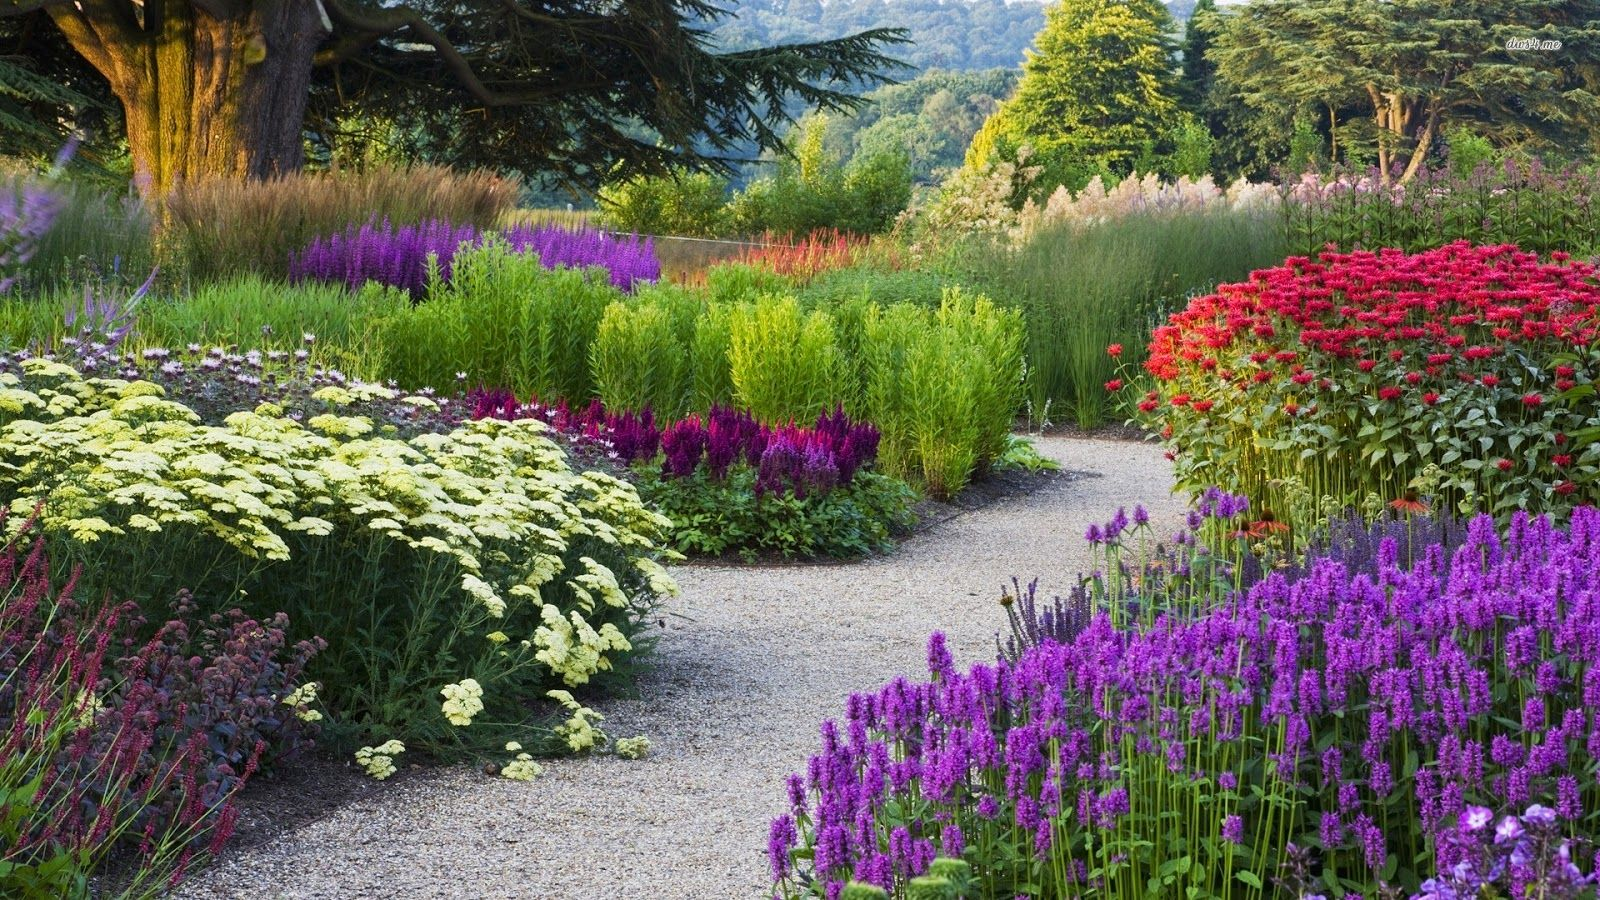 Flower Garden Wallpaper Free Download Garden Images Flower Garden Beautiful Gardens